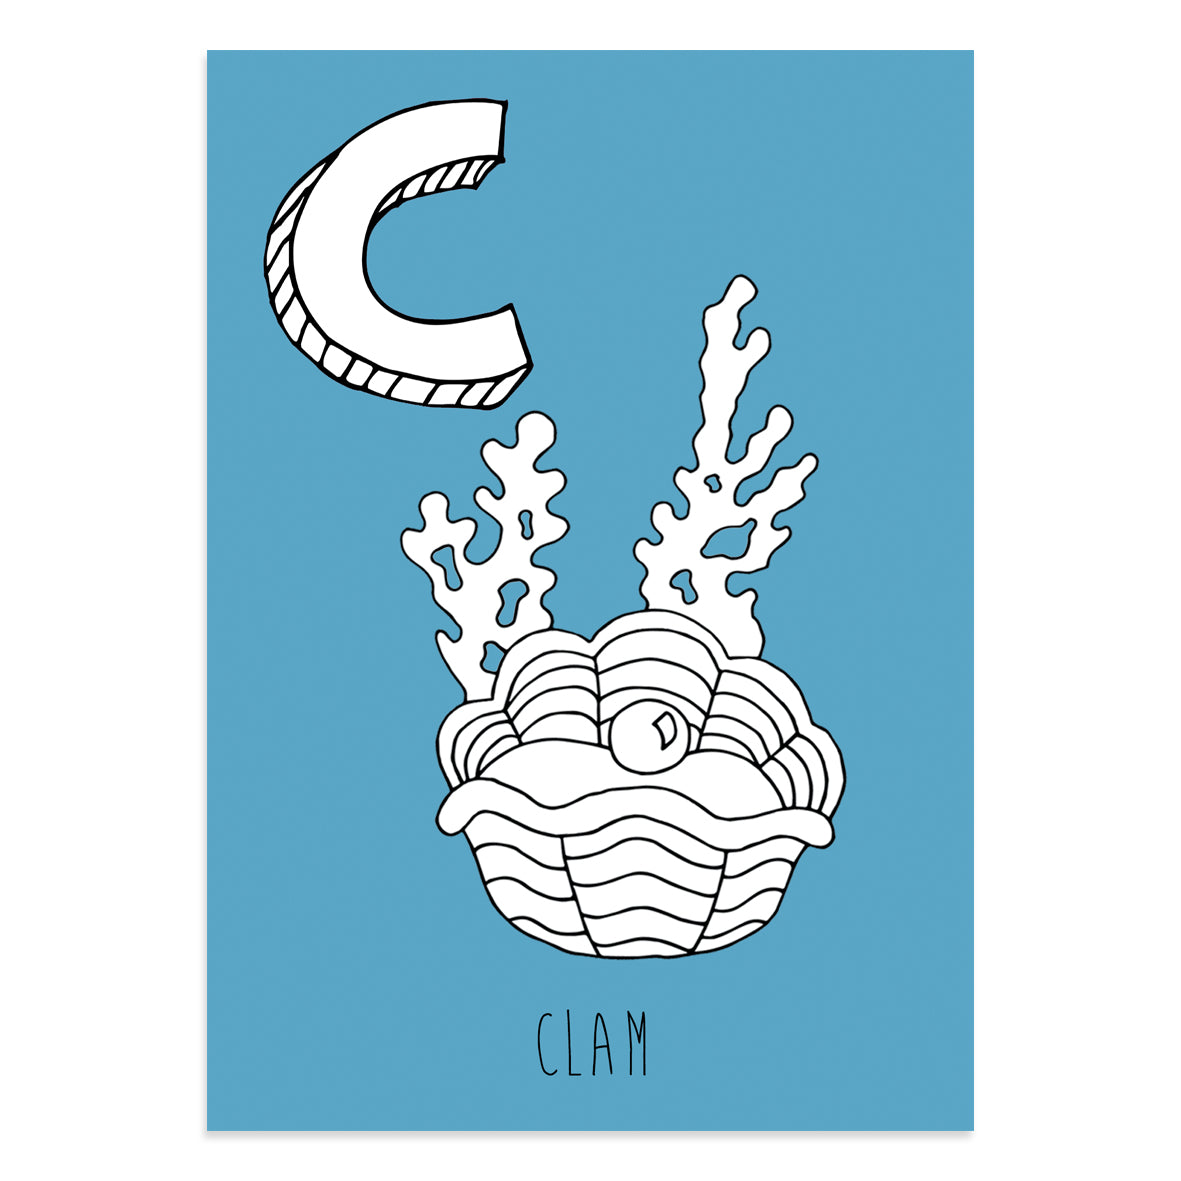 Blue postcard featuring the letter C for clam